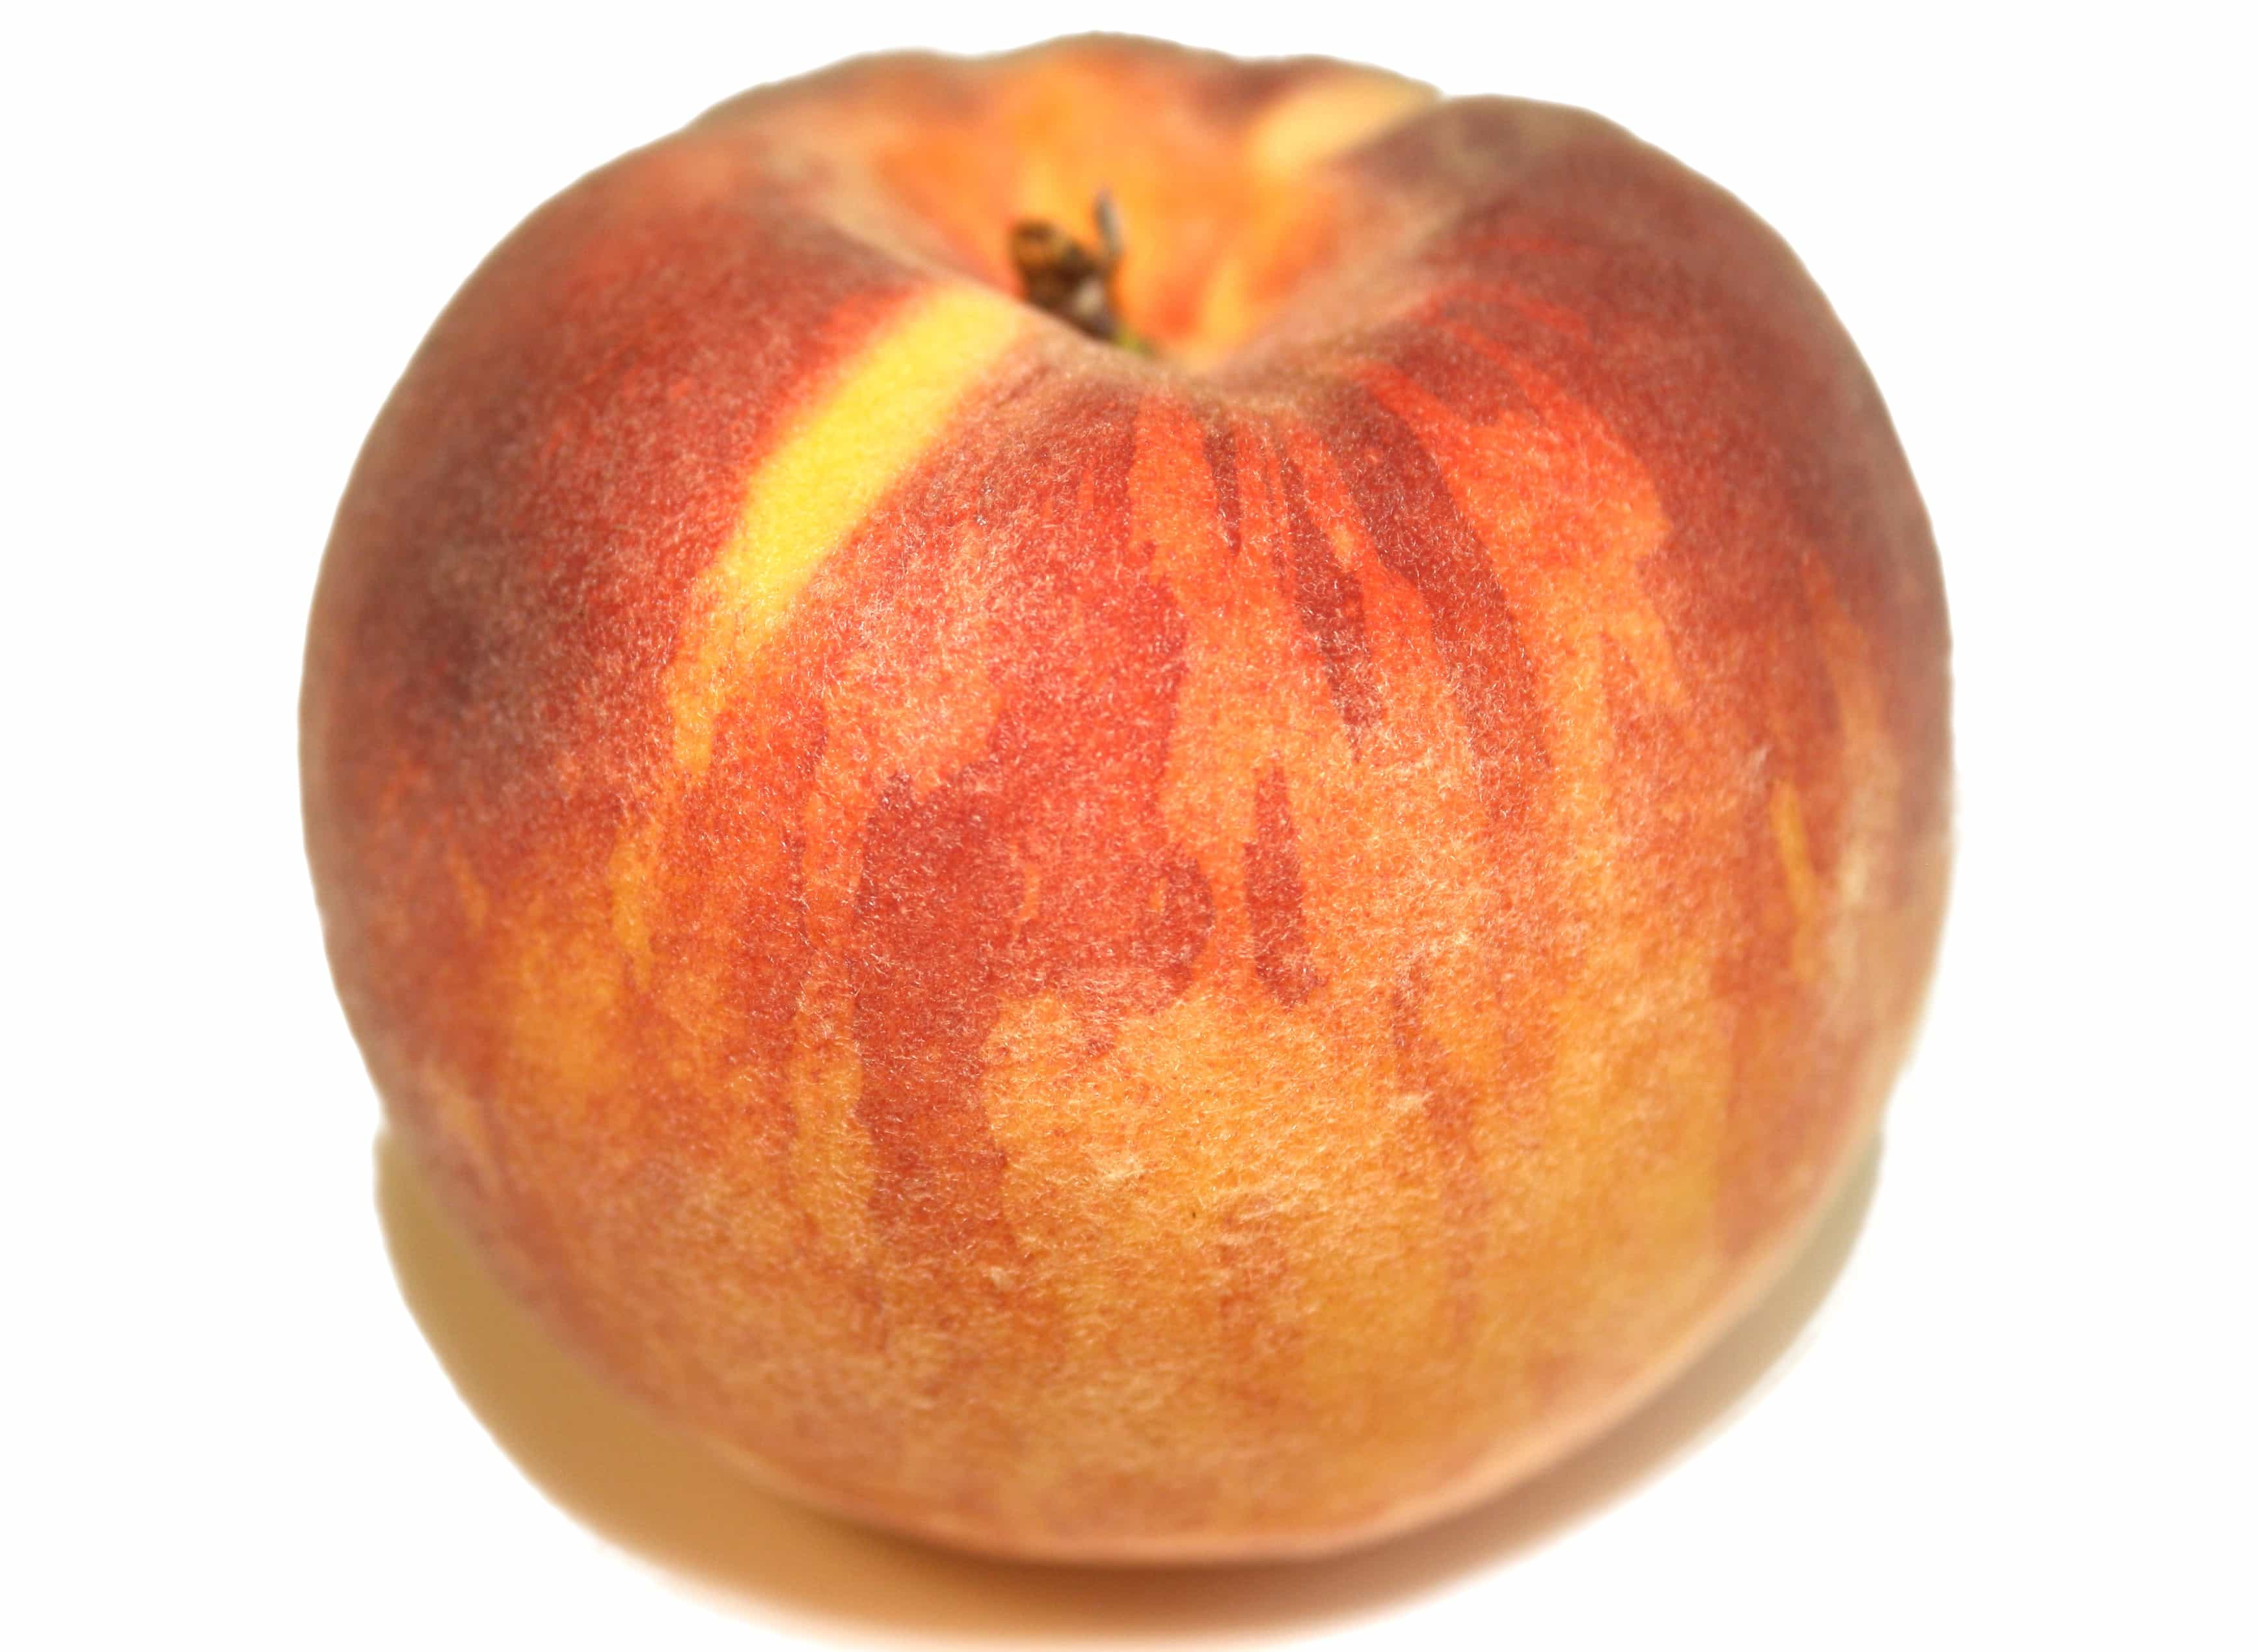 Glohaven Peach Trees For Sale Online | The Tree Center™